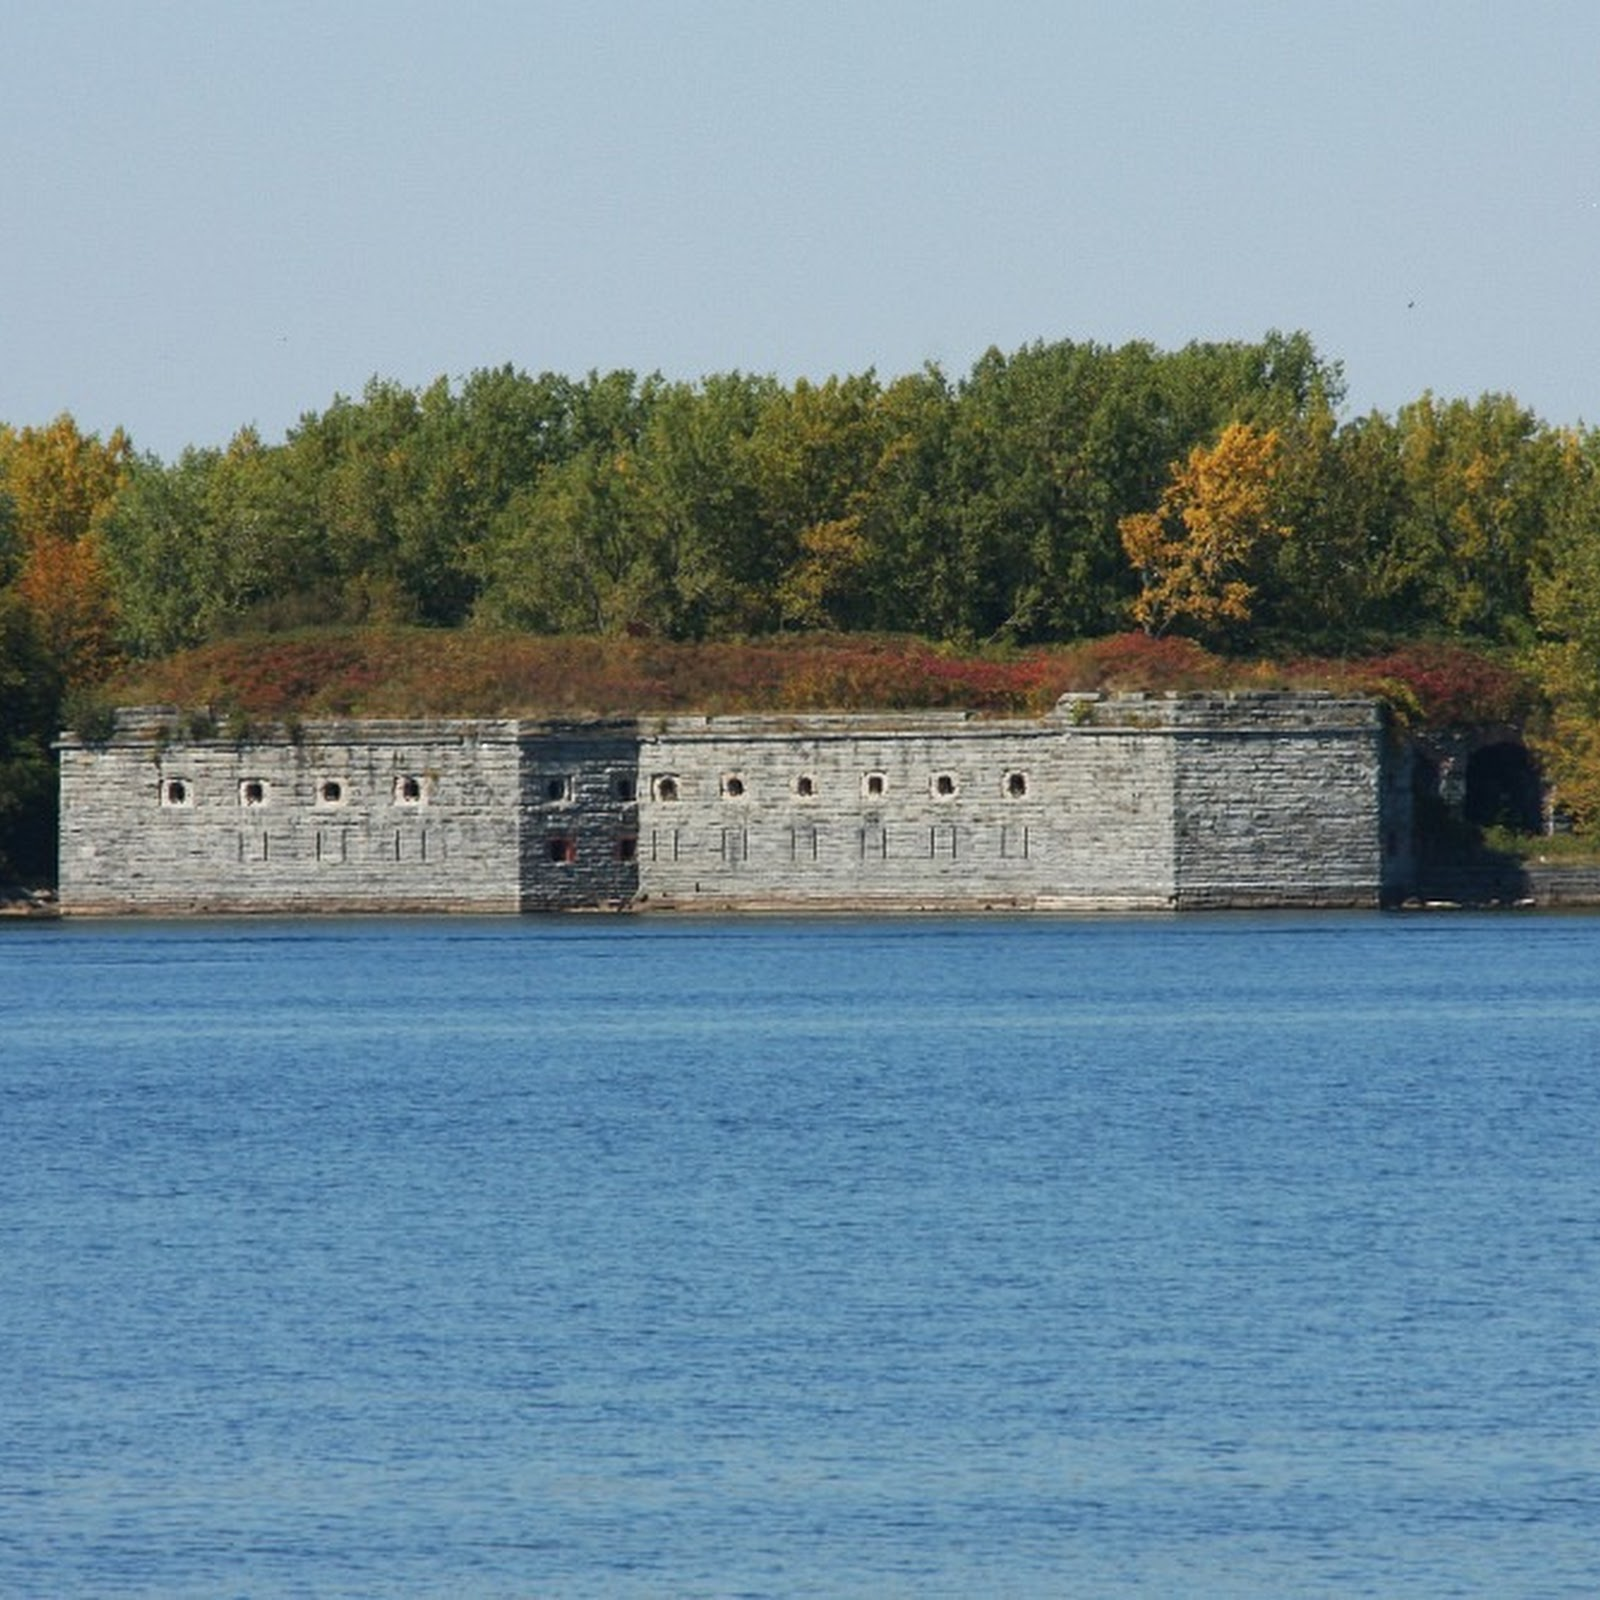 Fort Blunder: The Fort That America Mistakenly Built in Canada